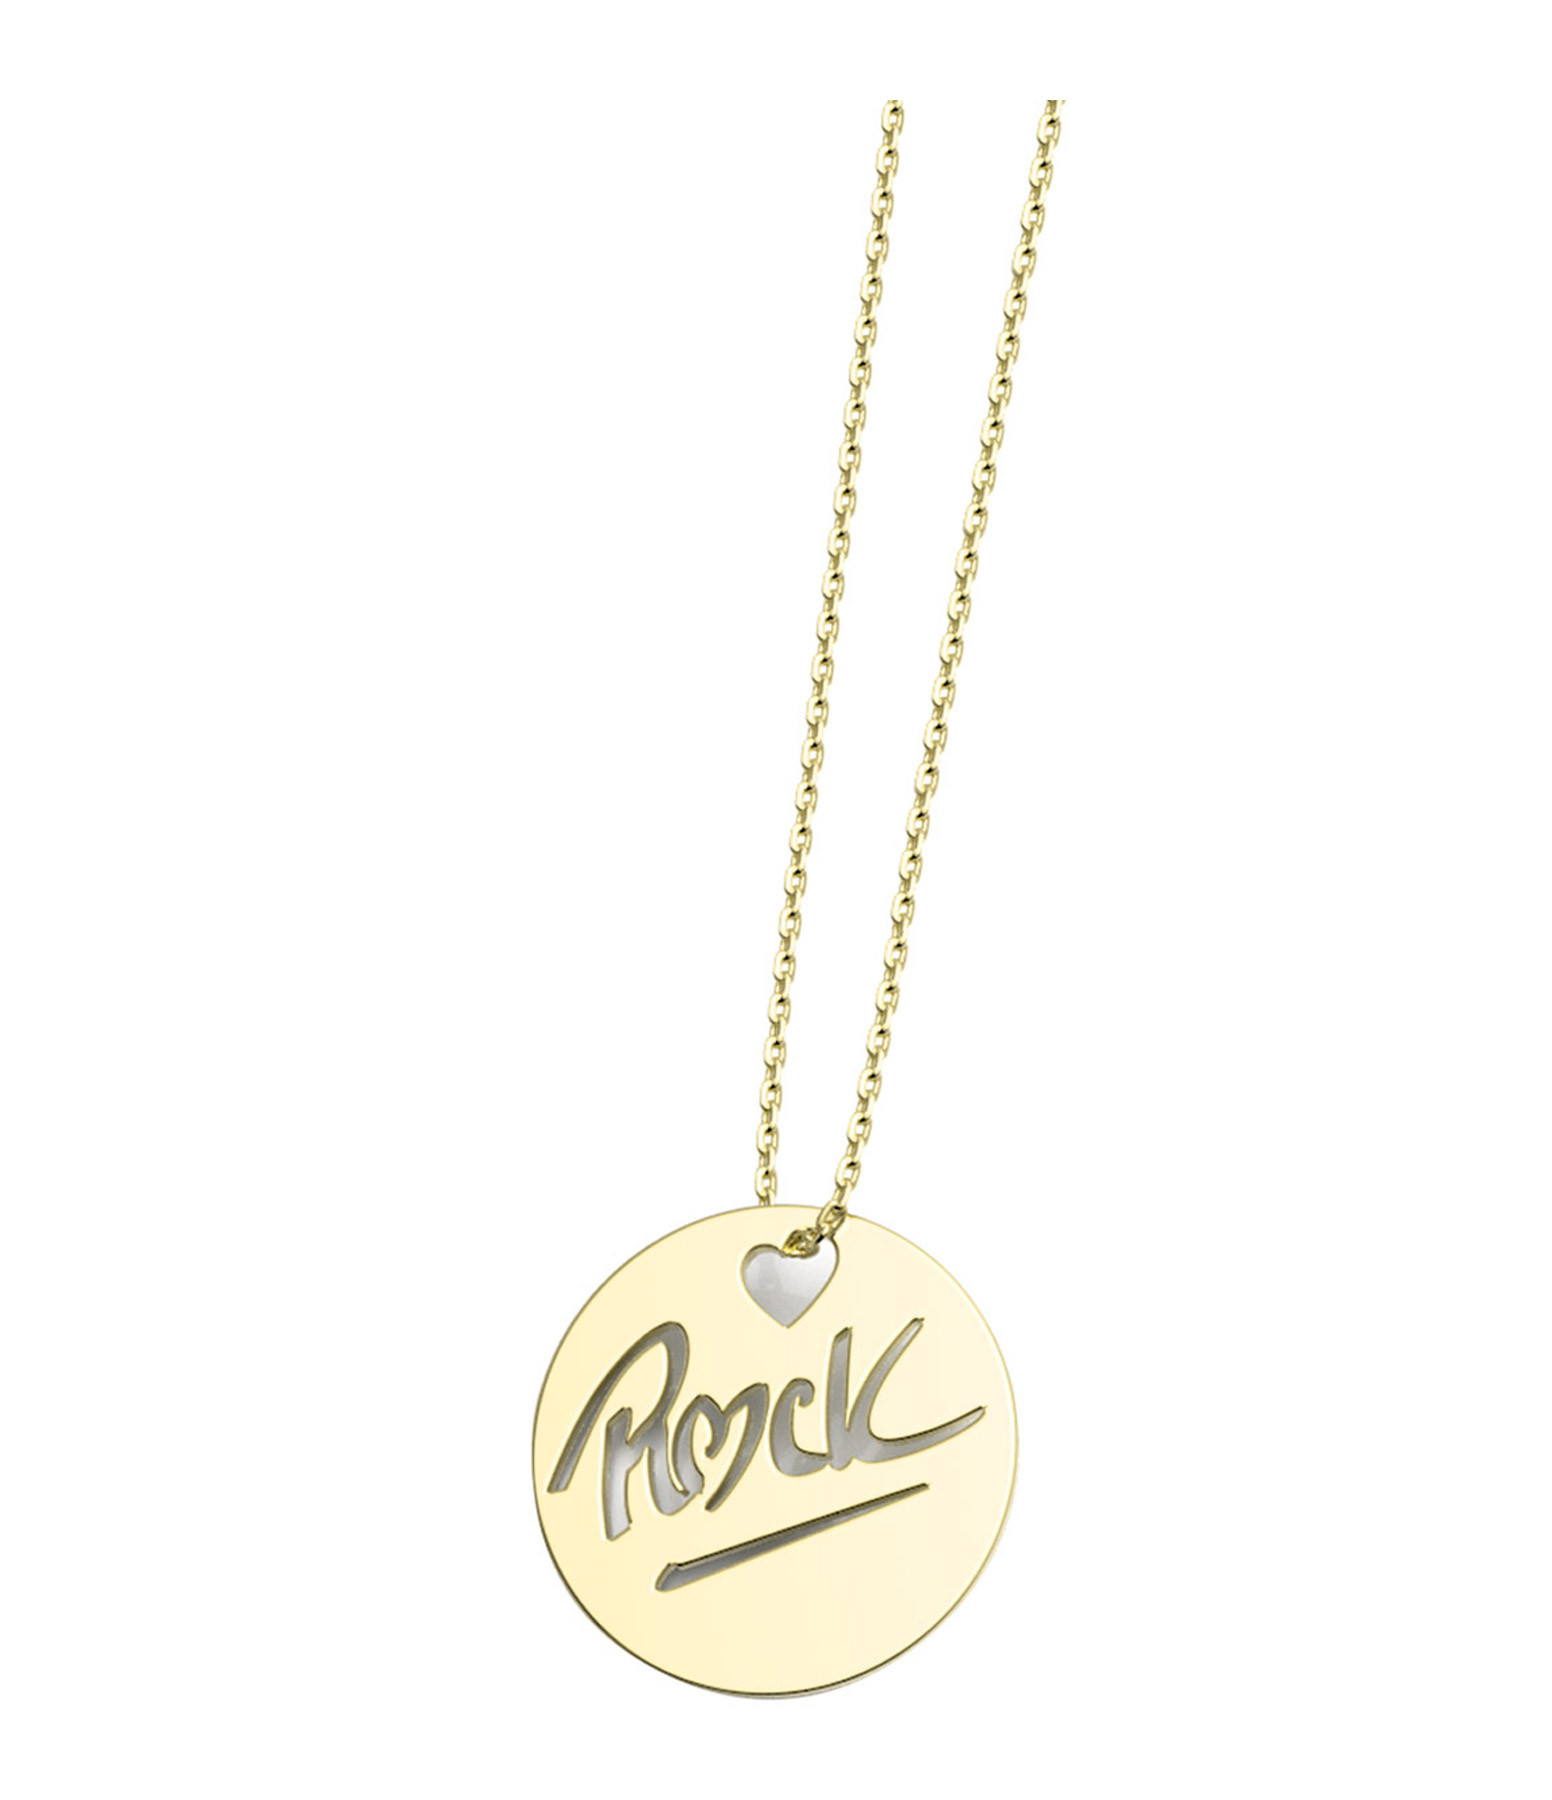 NAVA JOAILLERIE - Collier Rond Rock L Or Jaune